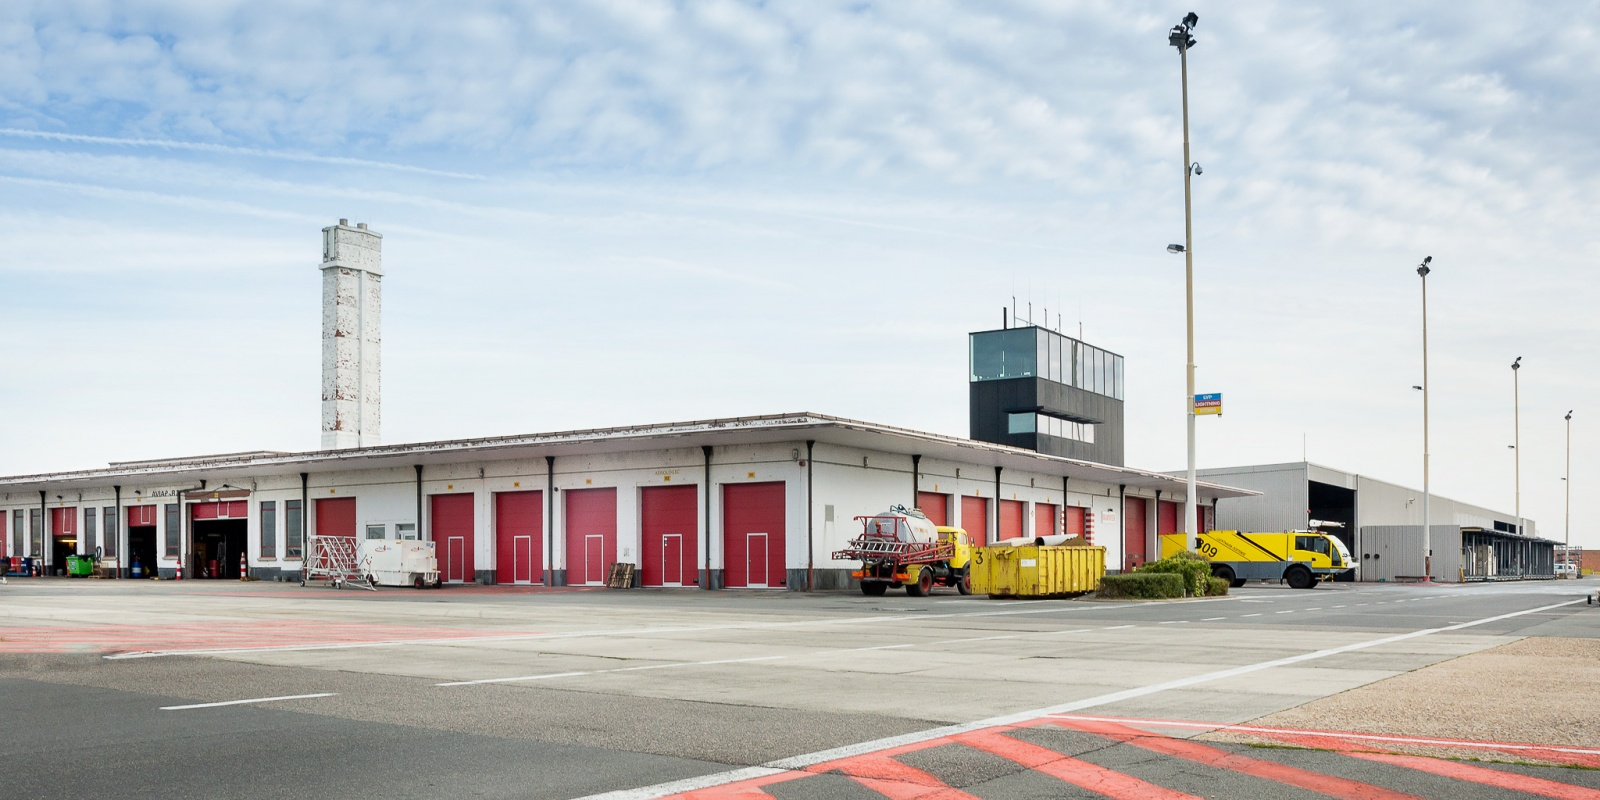 Airport Ostend